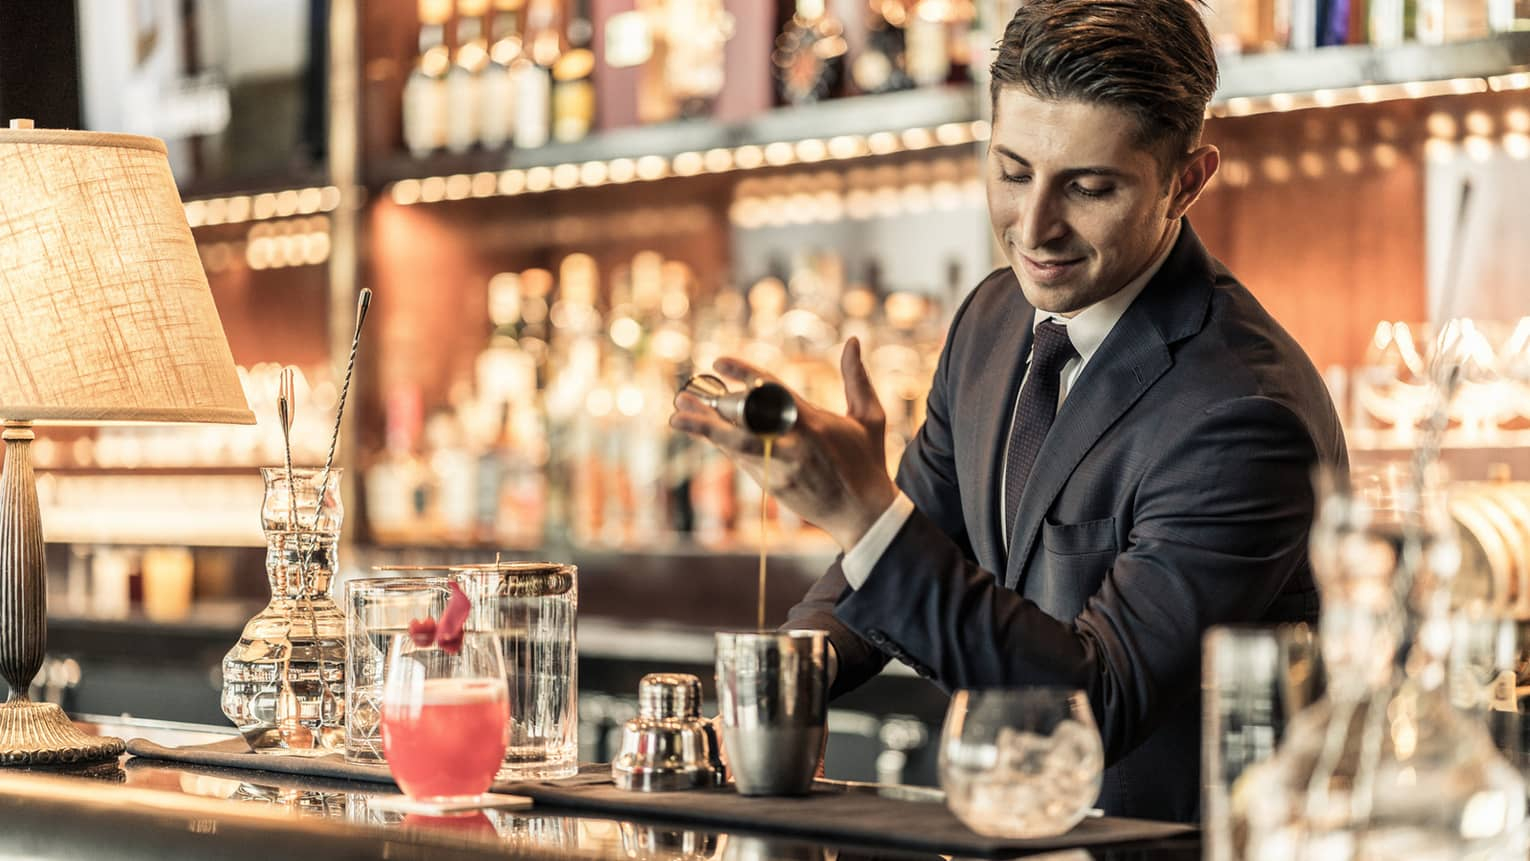 Bartender behind bar, pouring liquid from jigger into metal shaker among bar accessories